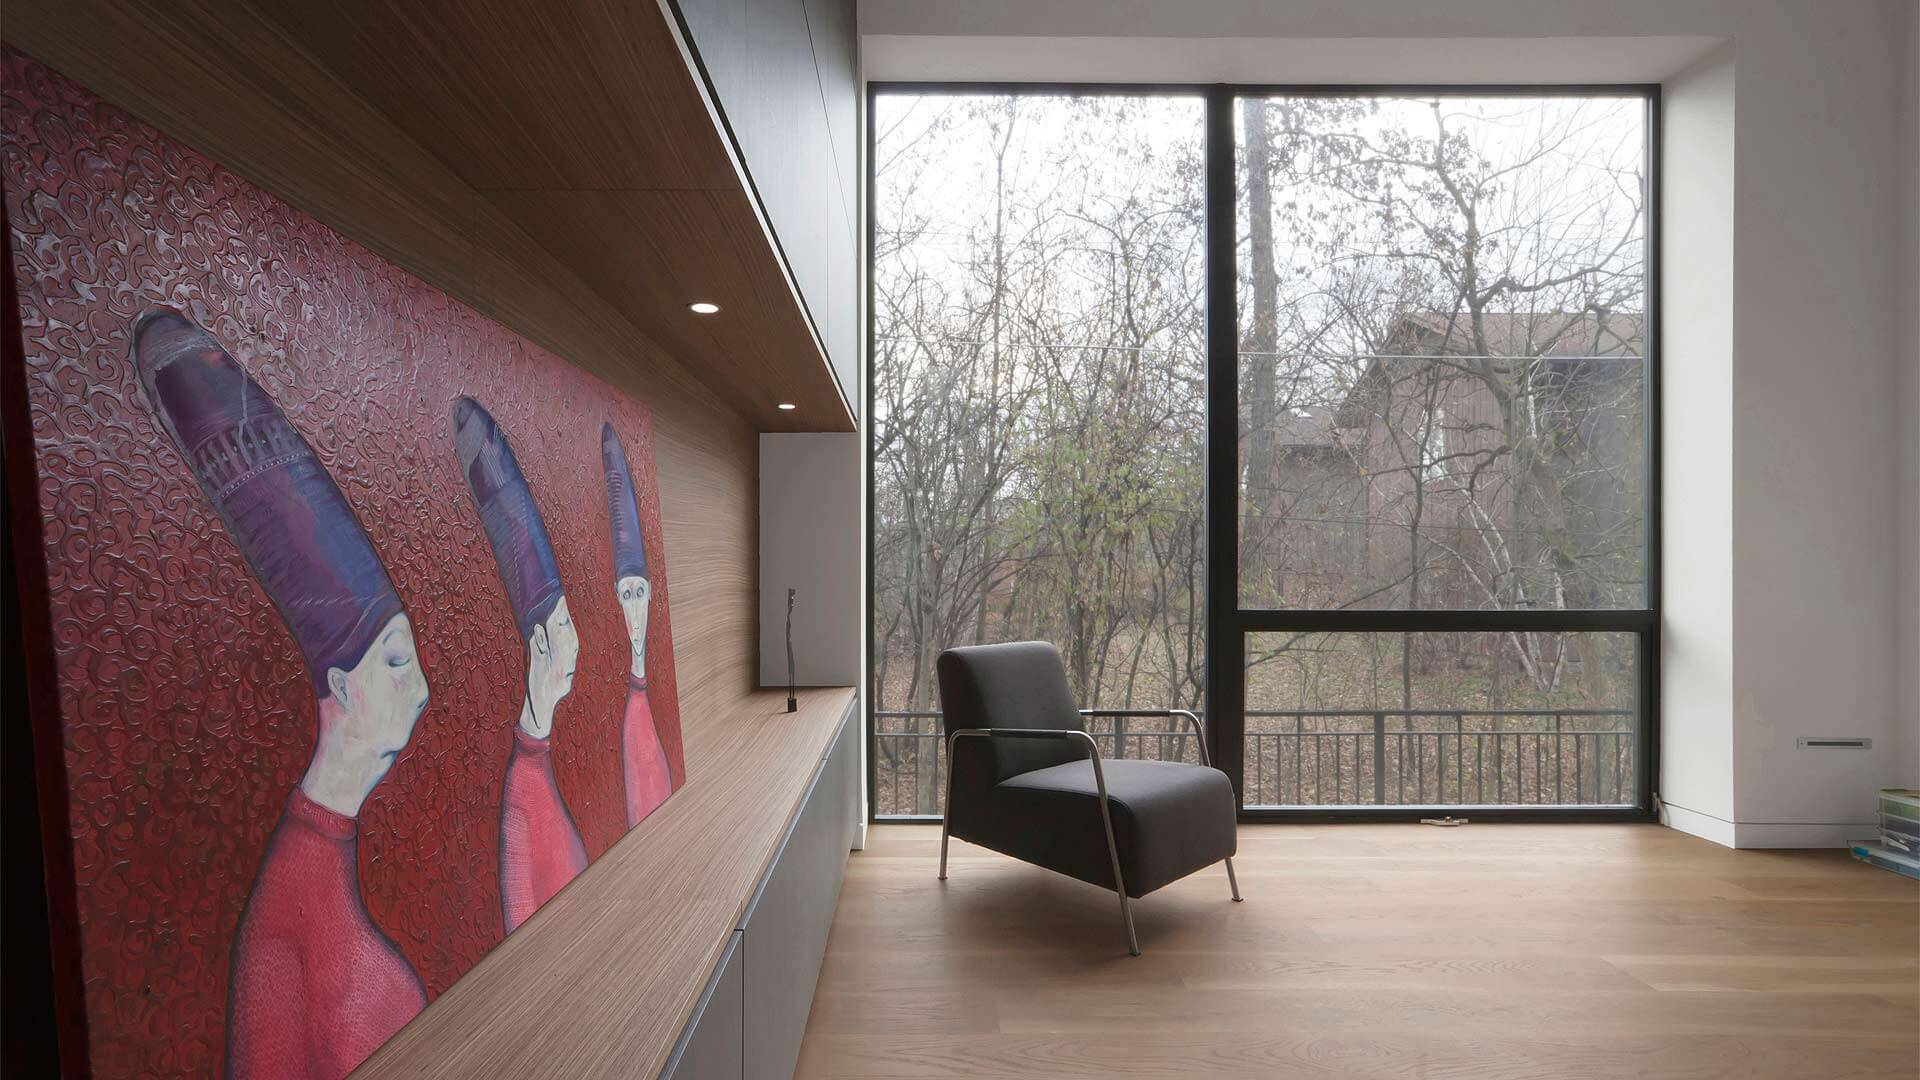 Playroom with full-height storage wall, full-wall glazing, and wide-plank oak flooring - Minimalist Modern - Indian Head Park - Chicago, Illinois - HAUS   Architecture For Modern Lifestyles, Christopher Short, Indianapolis Architect with Joe Trojanowski